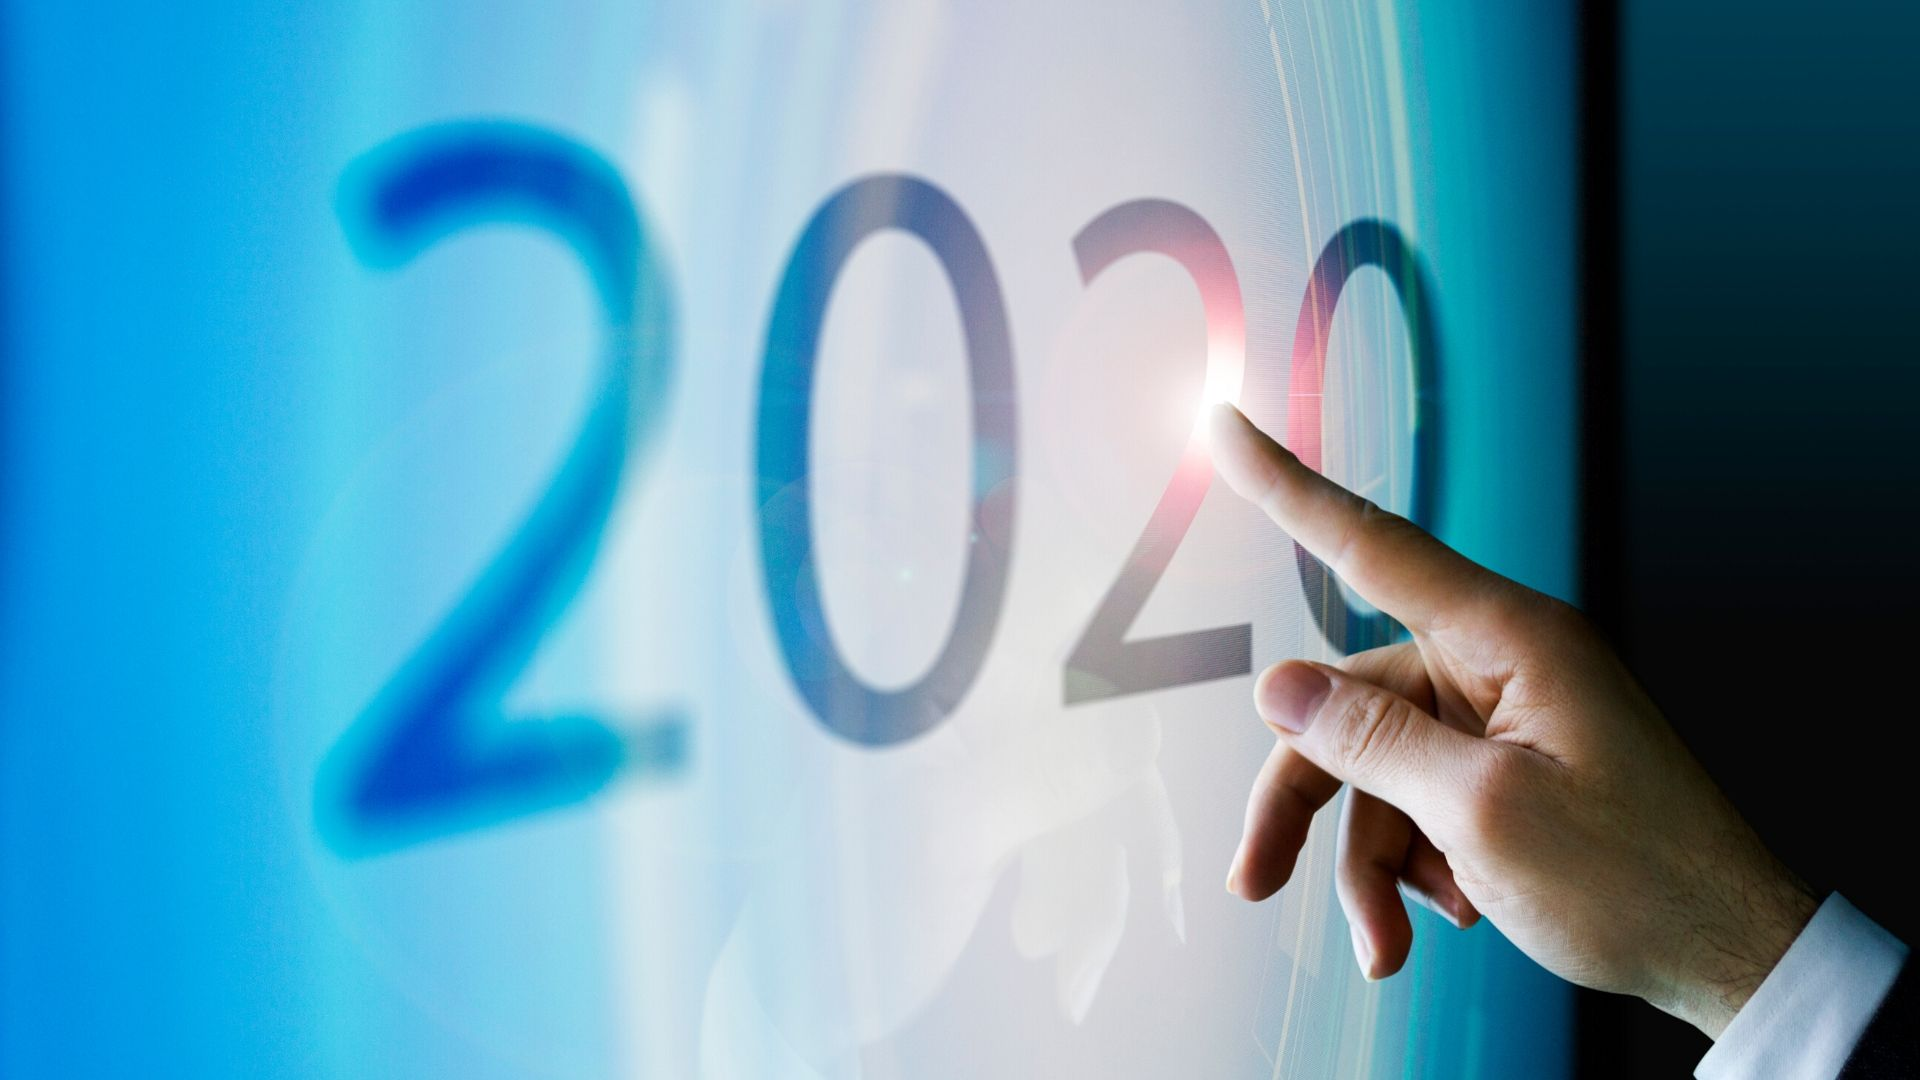 image of the numbers 2020 on frosted glass